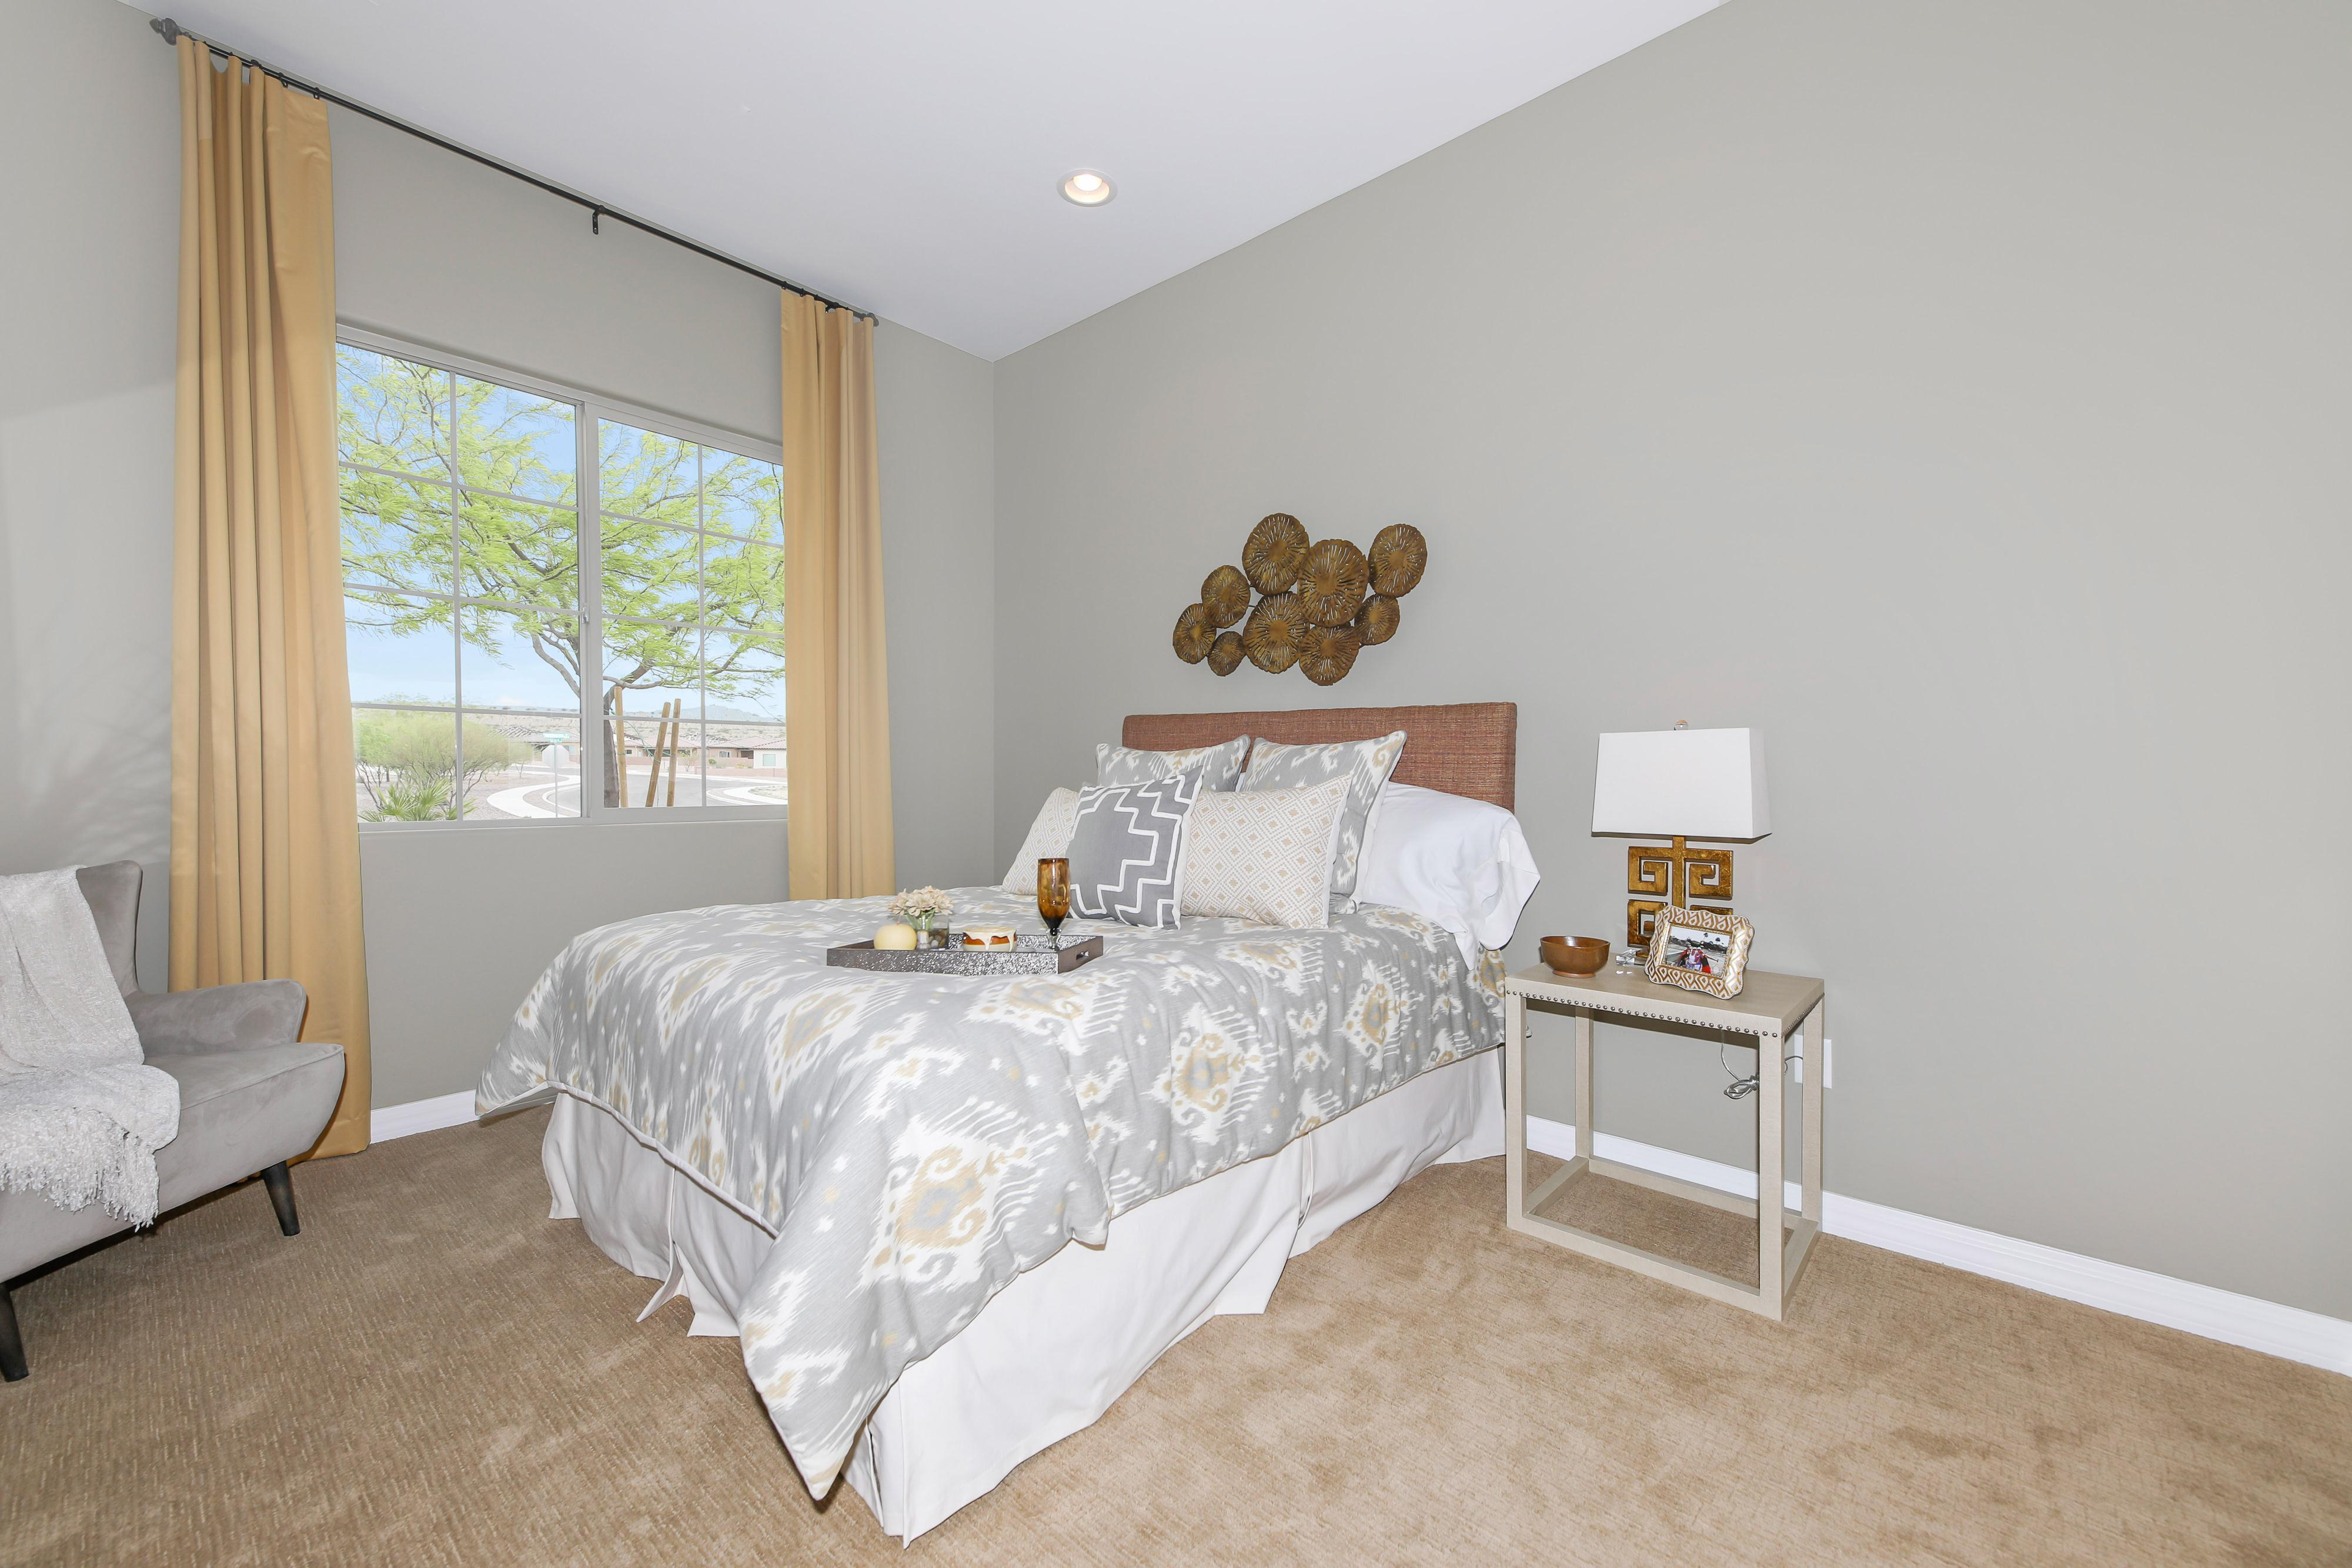 Bedroom featured in the Cimarron By Fairfield Homes in Tucson, AZ